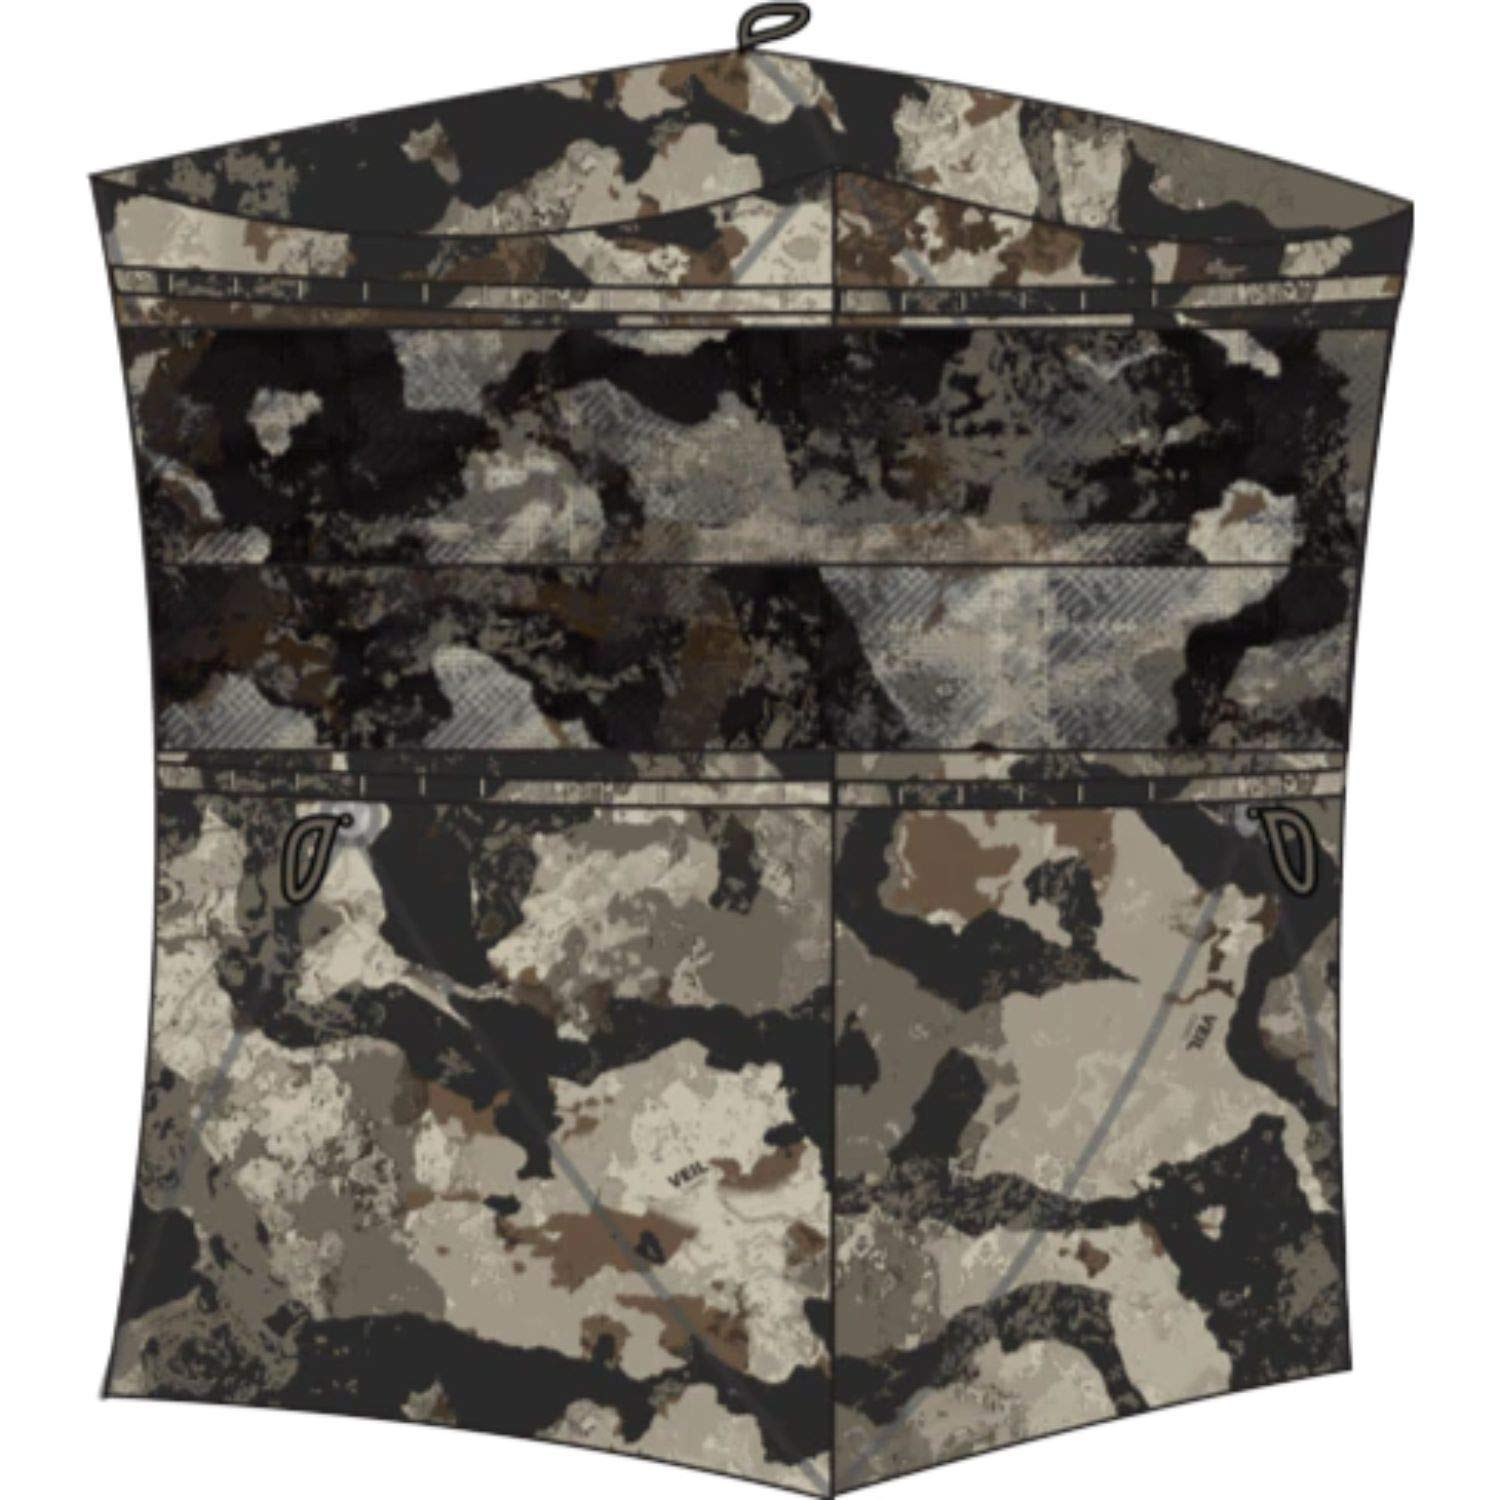 Muddy Infinity 2-Man Ground Blind with Surround View Shadow Mesh Eliminates Blind Spots by Muddy